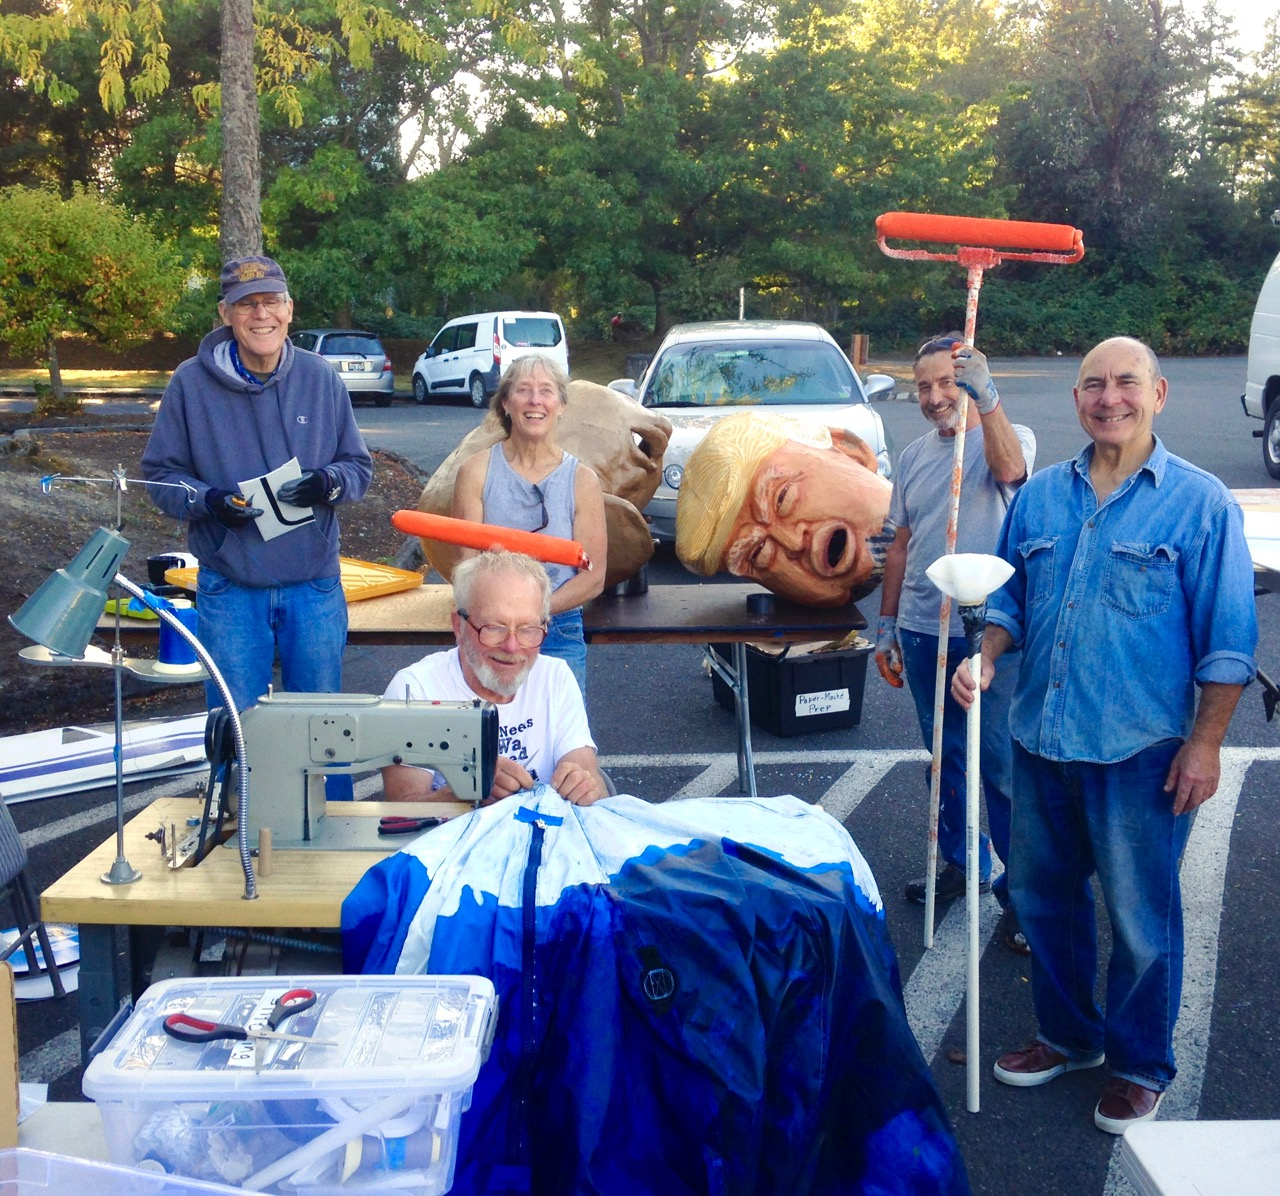 Vashon_Art_Build_globe_sittching_and_paint_party_IMG_1845.jpg